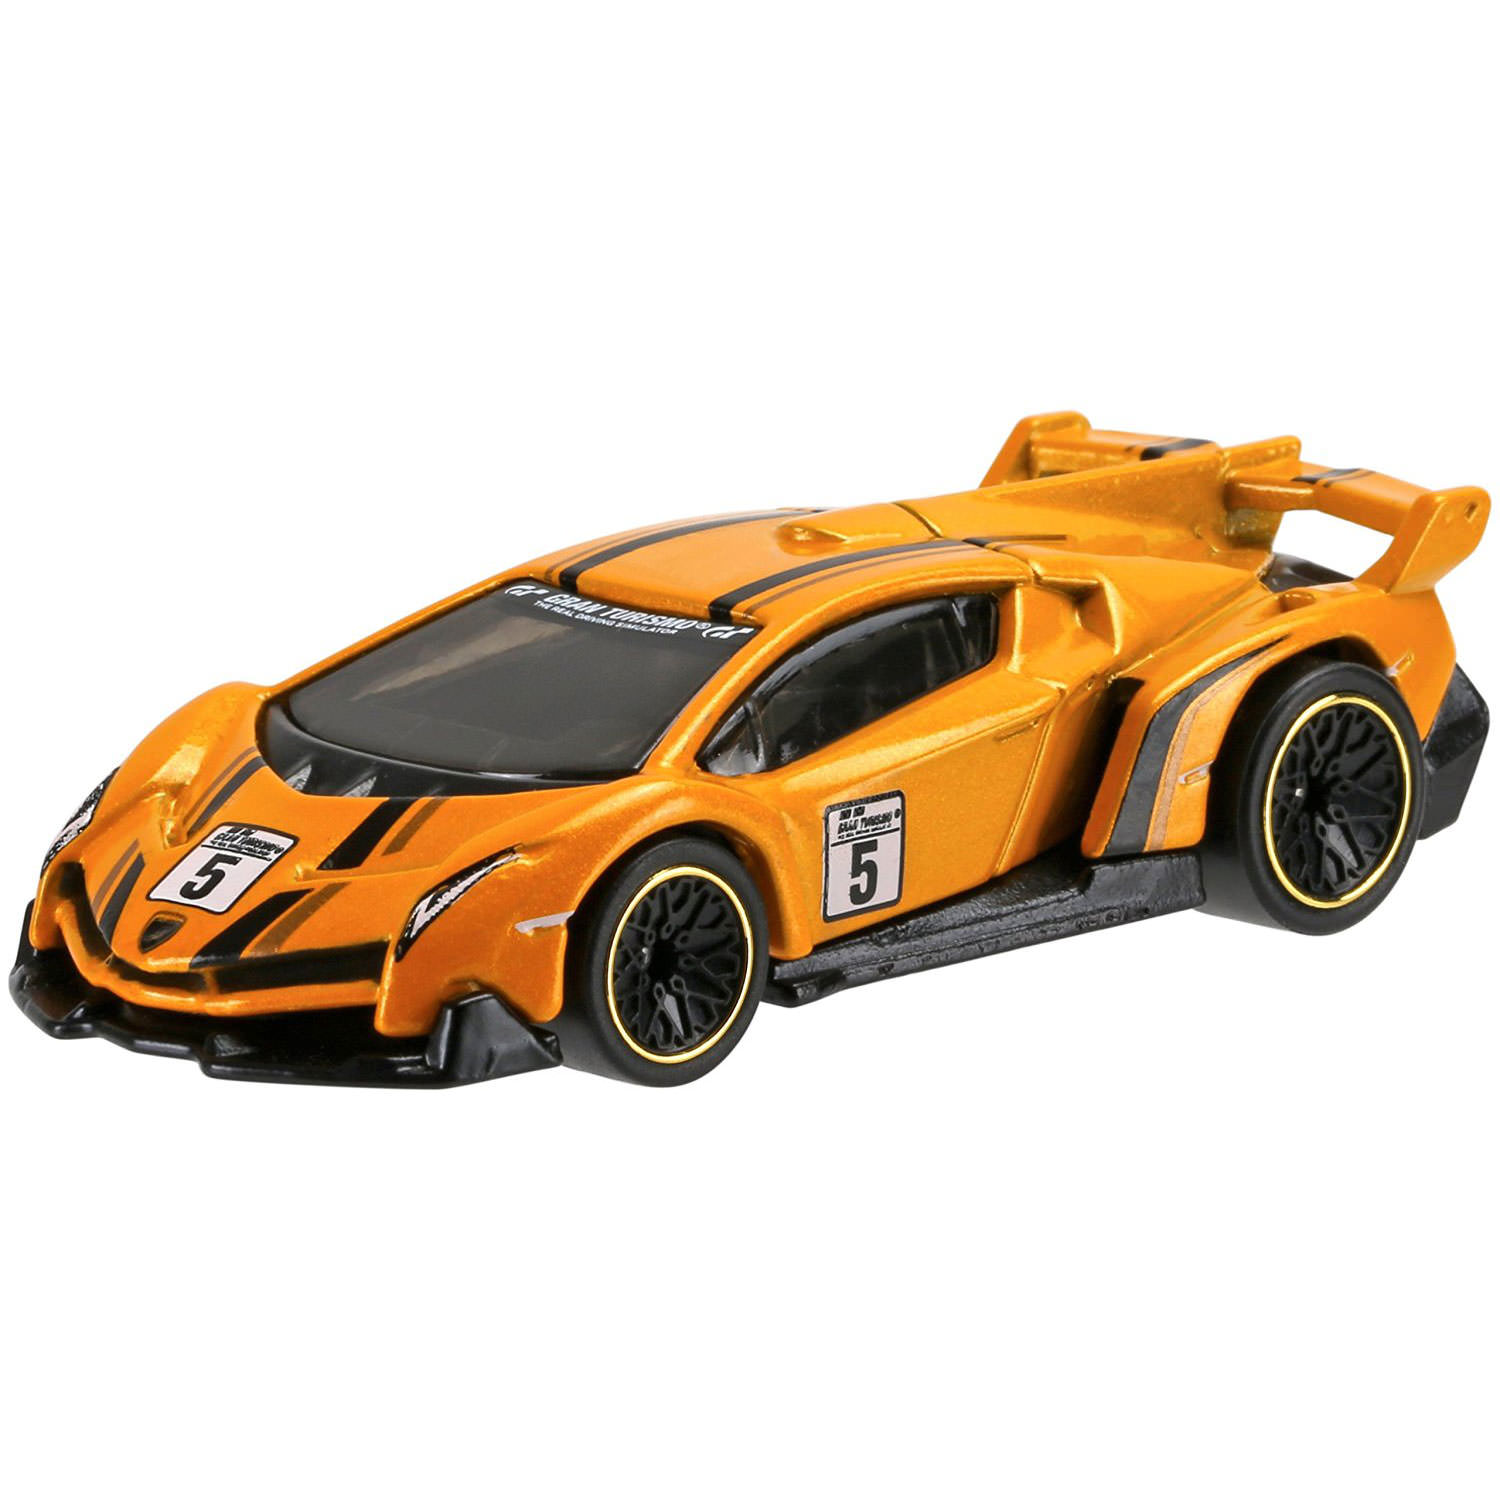 lamborghini asterion real racing with Lamborghini Veneno Hot Wheels Wiki on Lamborghini Asterion Lp900 Dtd F32955 together with Lamborghini Huracan Price Real Racing 3 841 furthermore Blue Lamborghini as well My Real Racing 3 Cars furthermore Real racing 3 pc 172720.